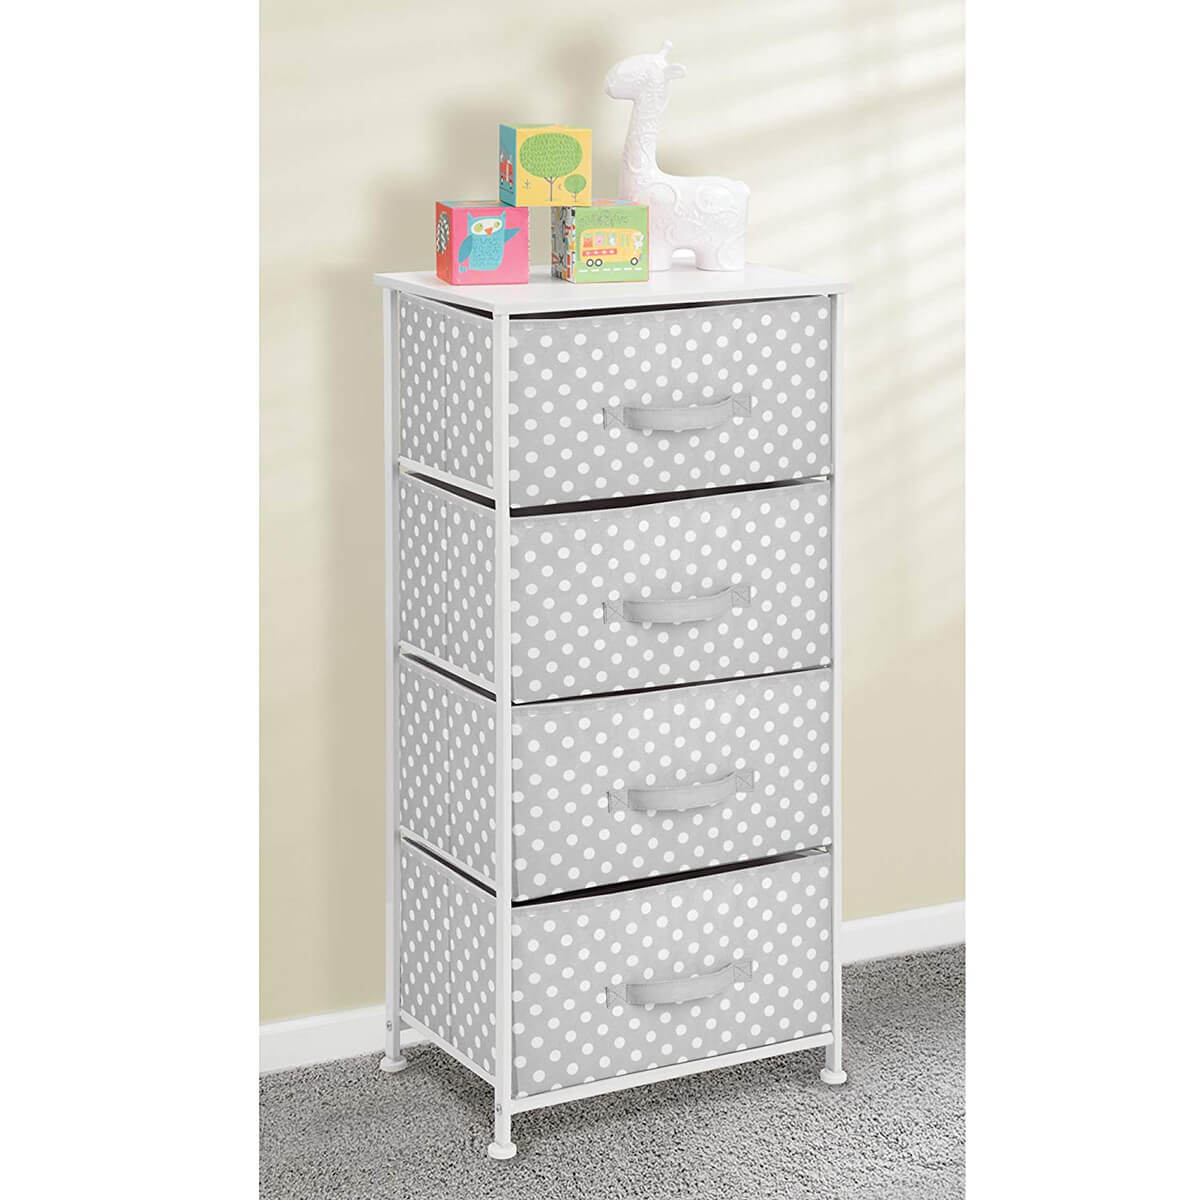 Adorable Polka-Dotted Dresser